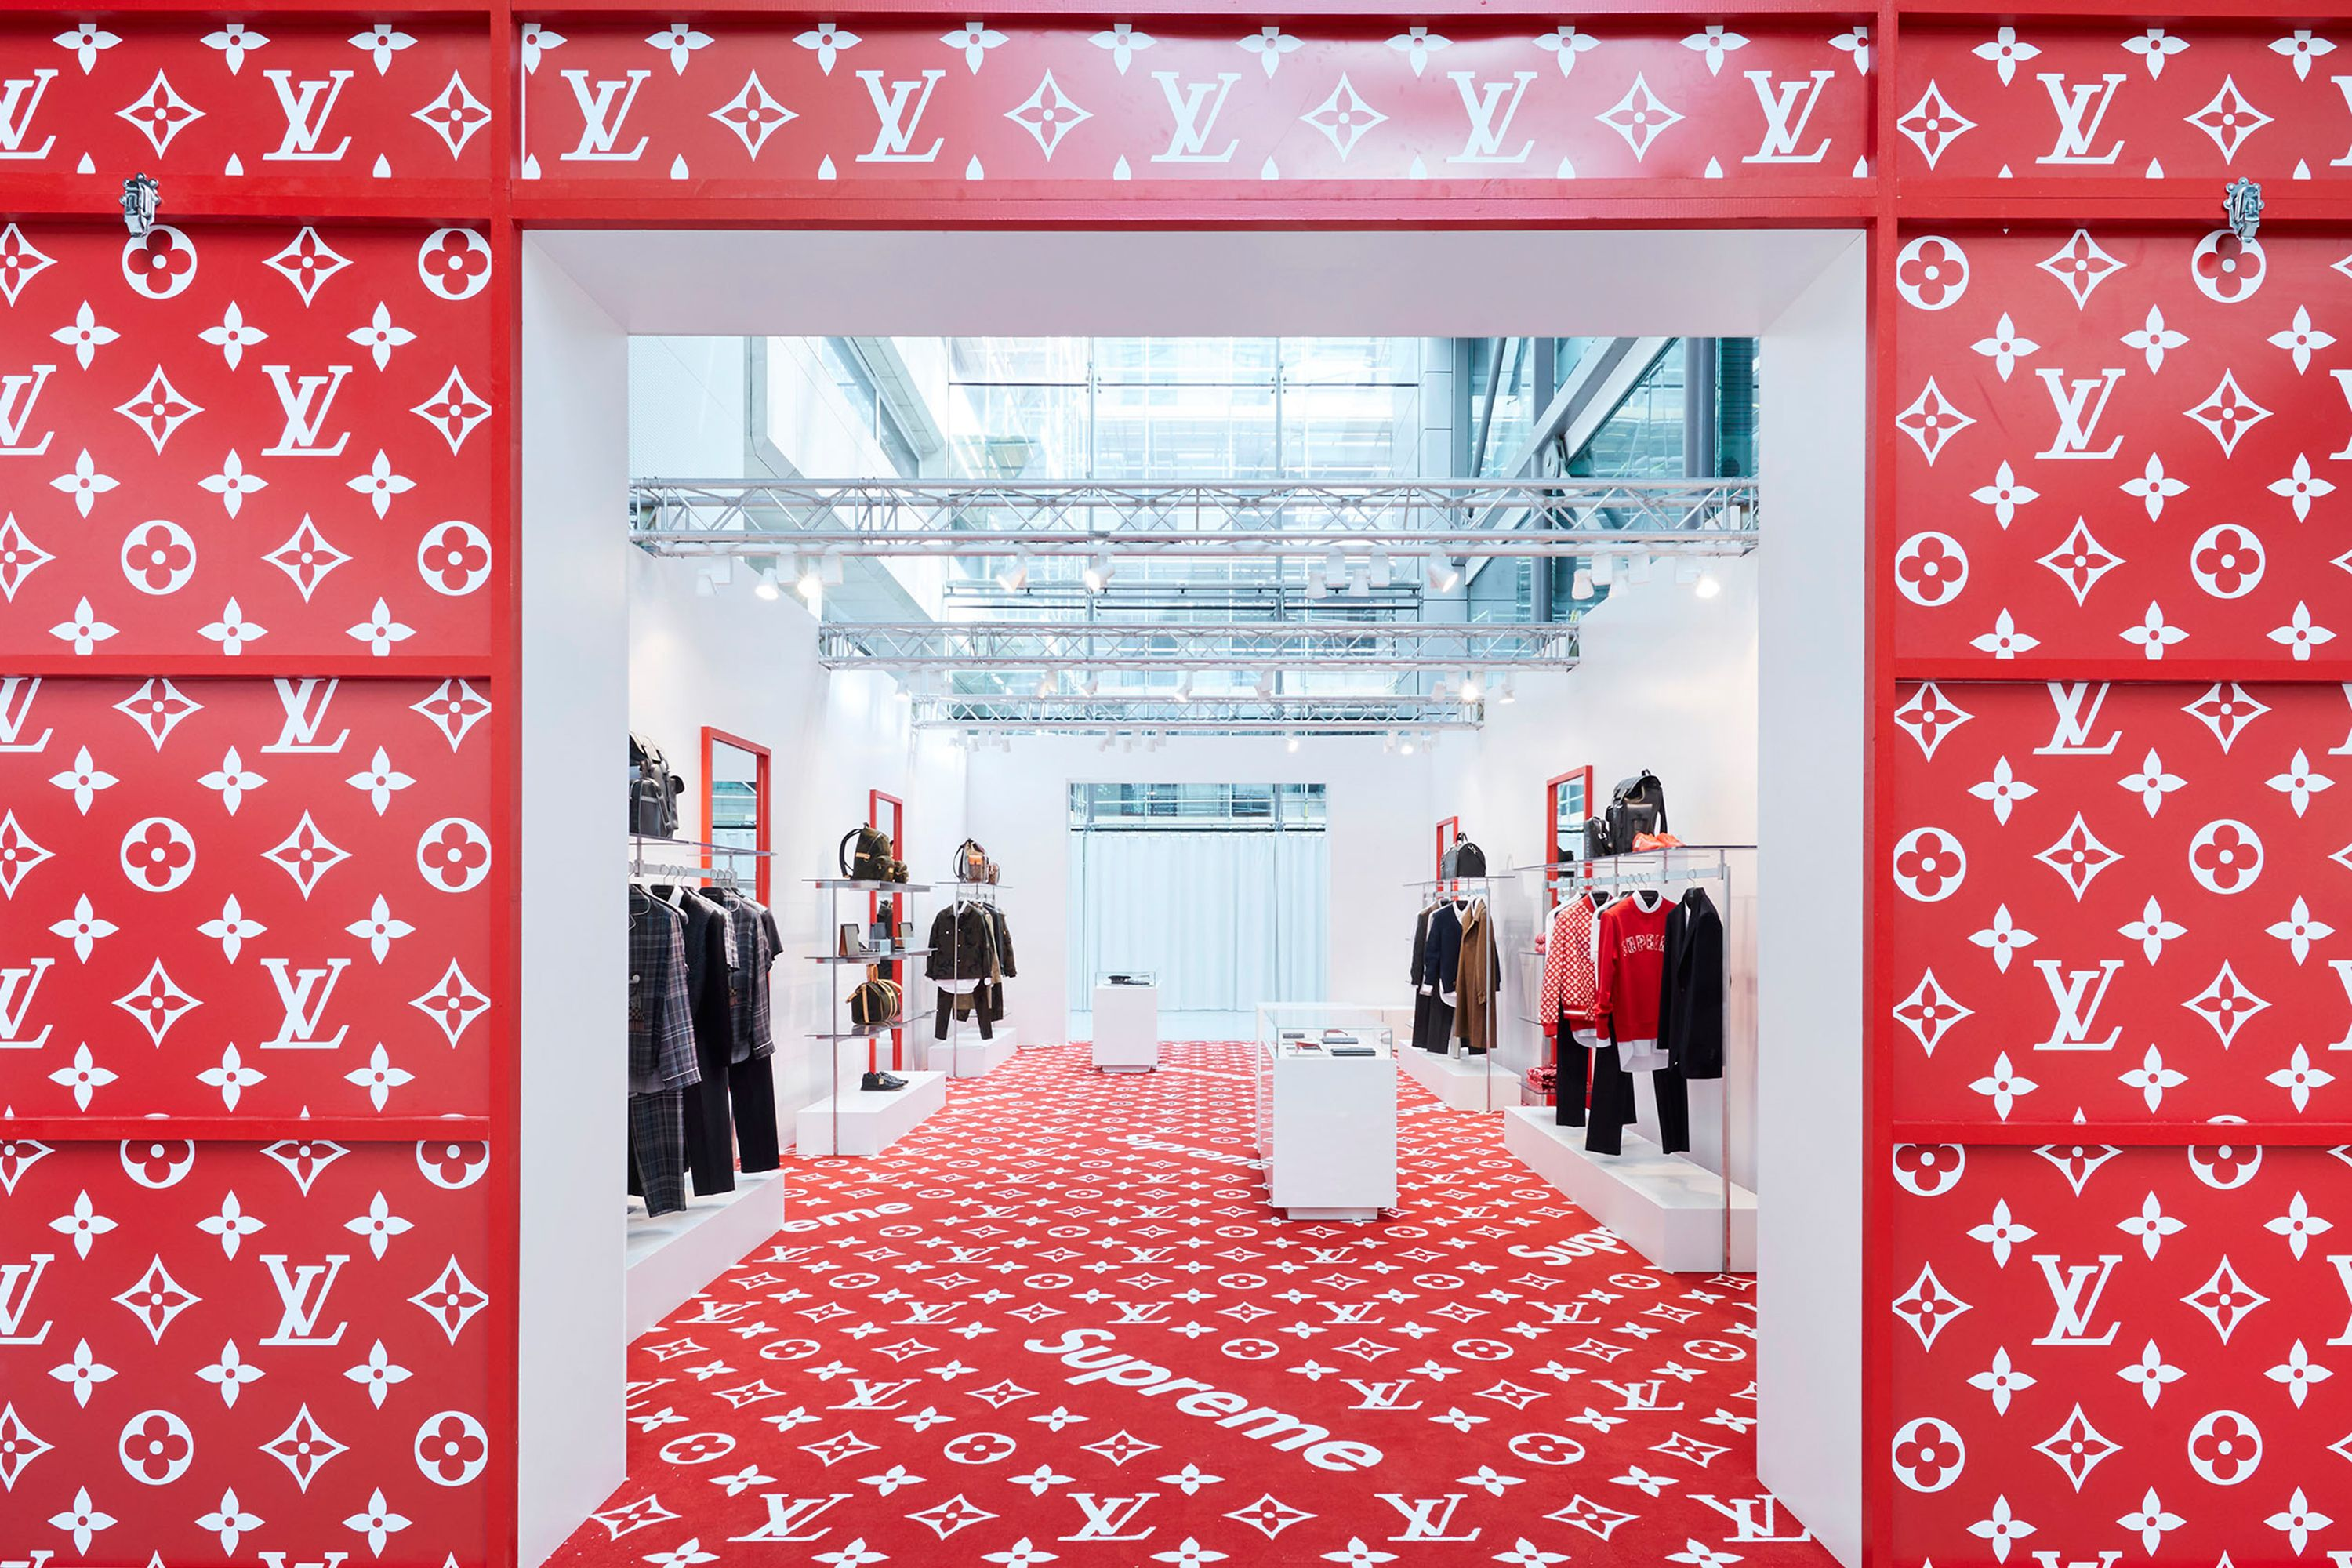 83eebf5362d862 Louis Vuitton s Supreme pop-up store has arrived in London